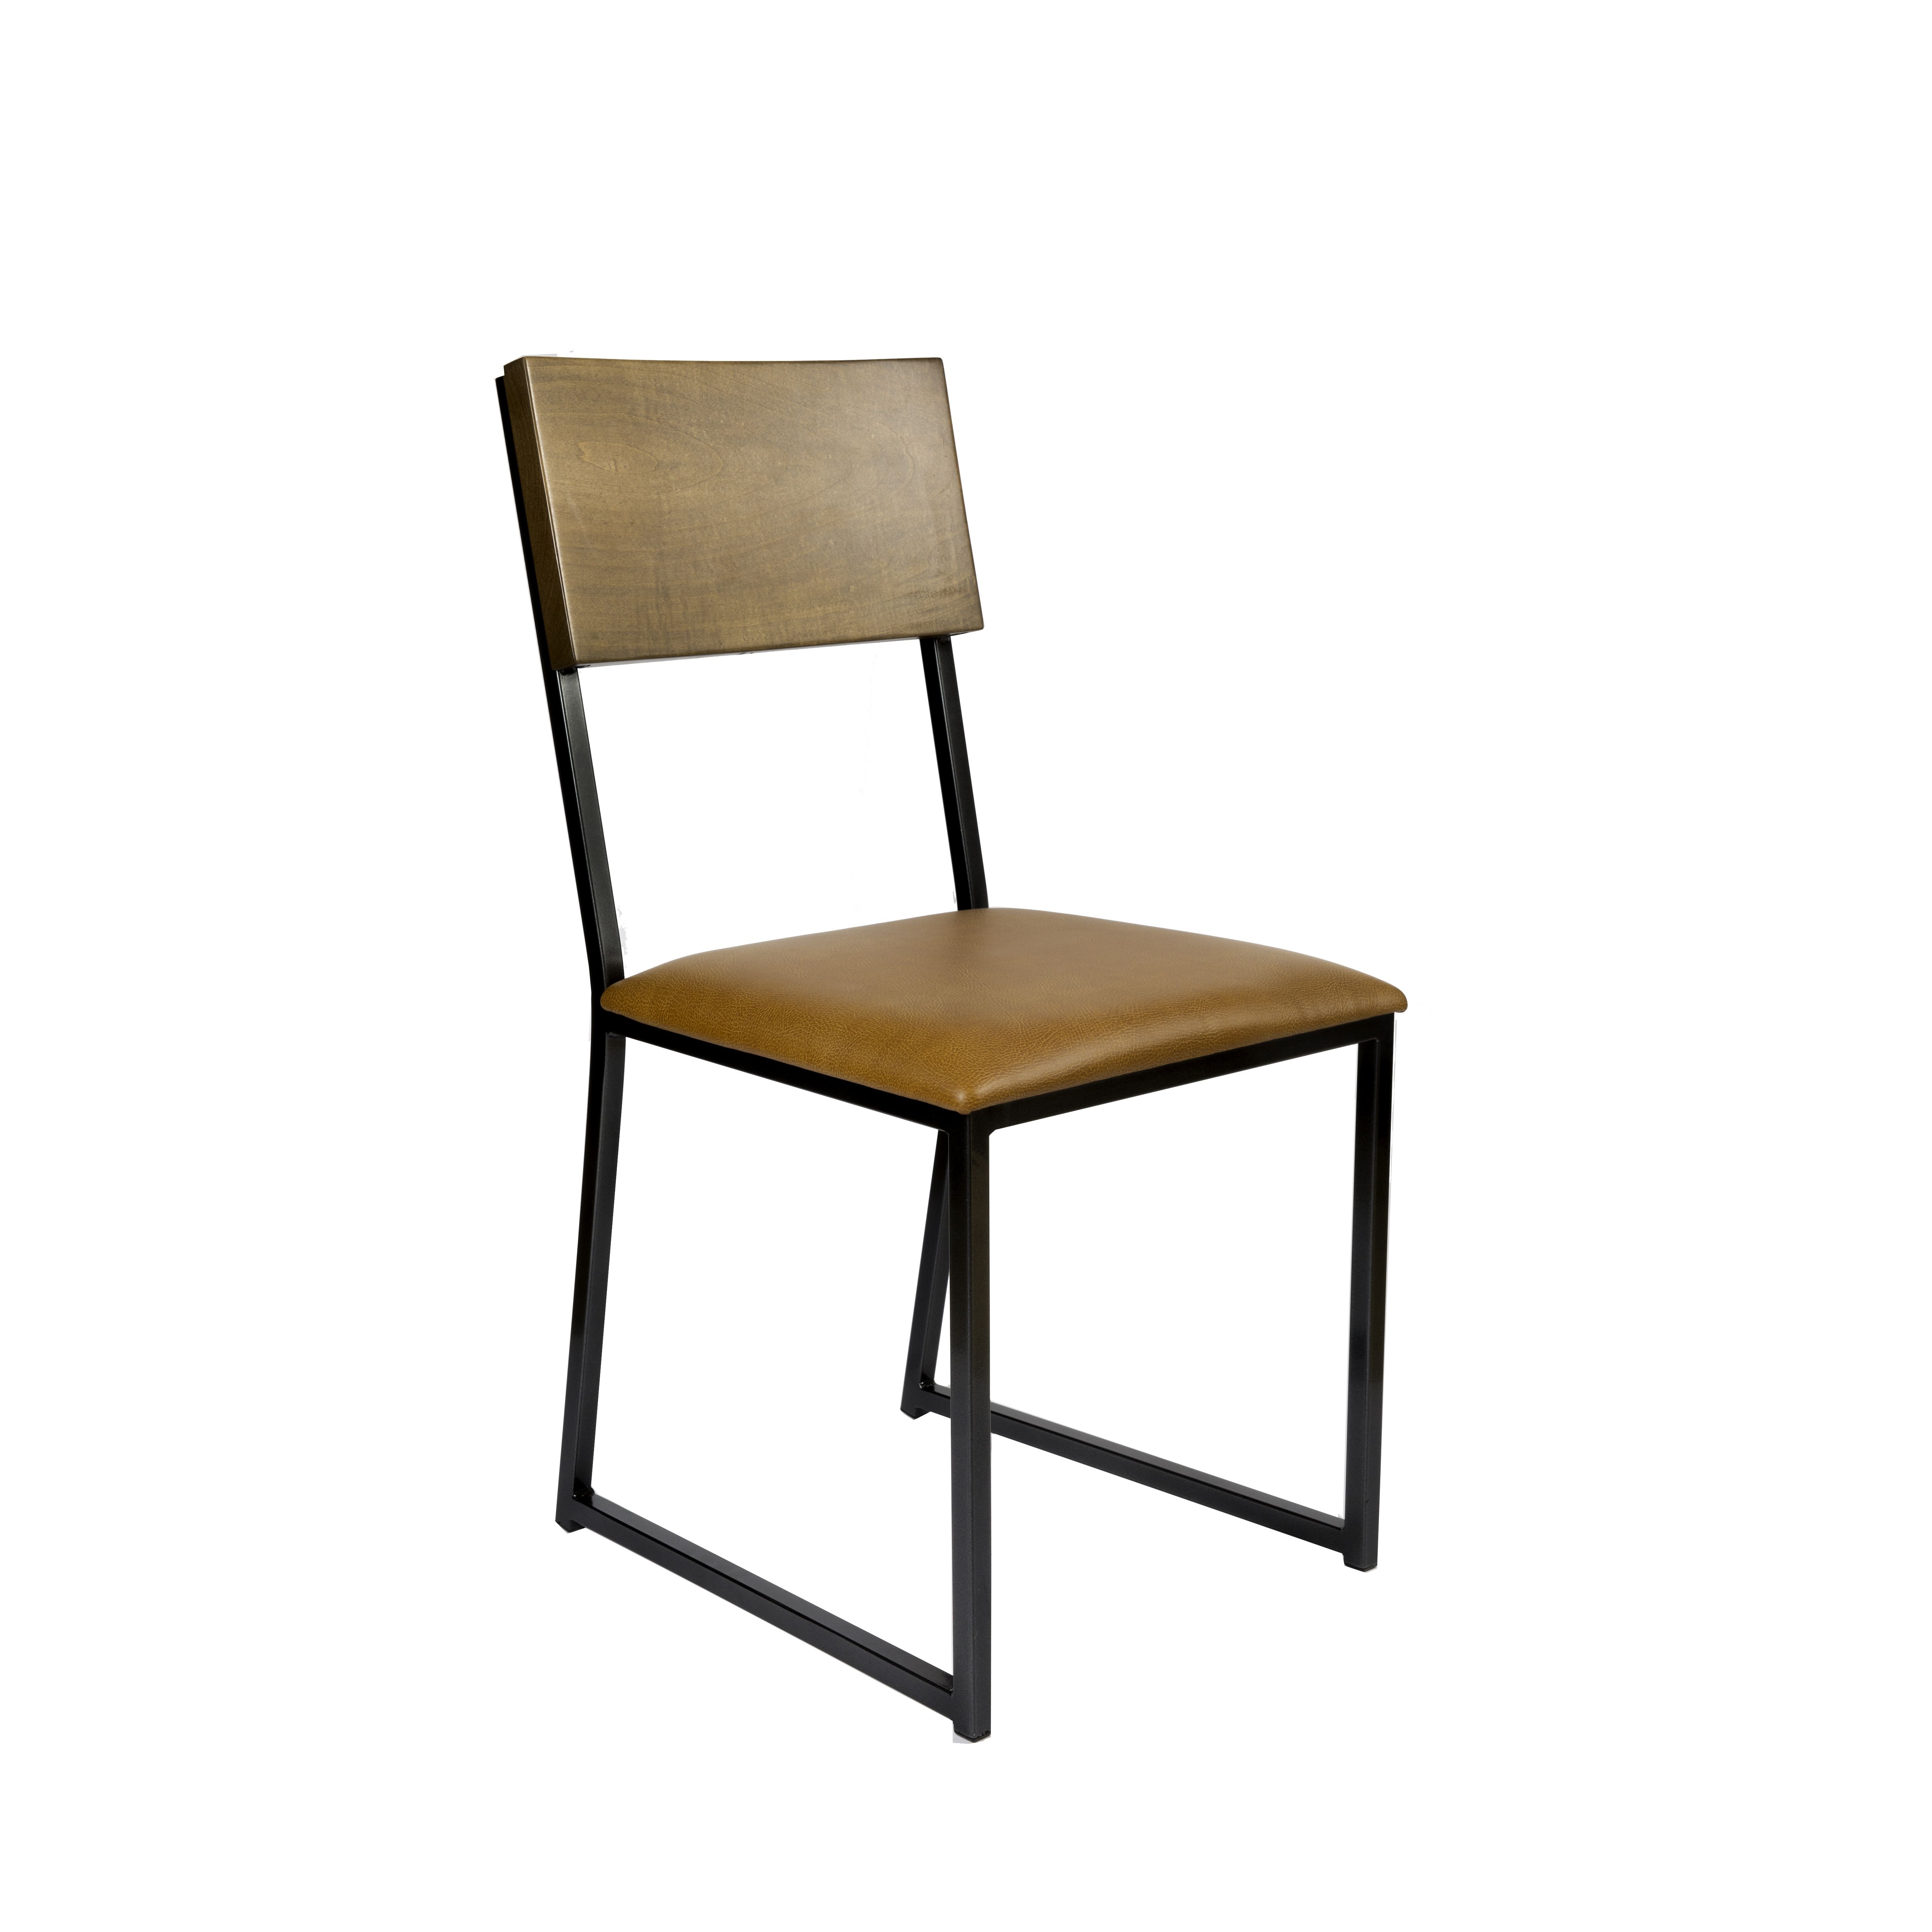 Brady Chair By Grand Rapids Chair Company With